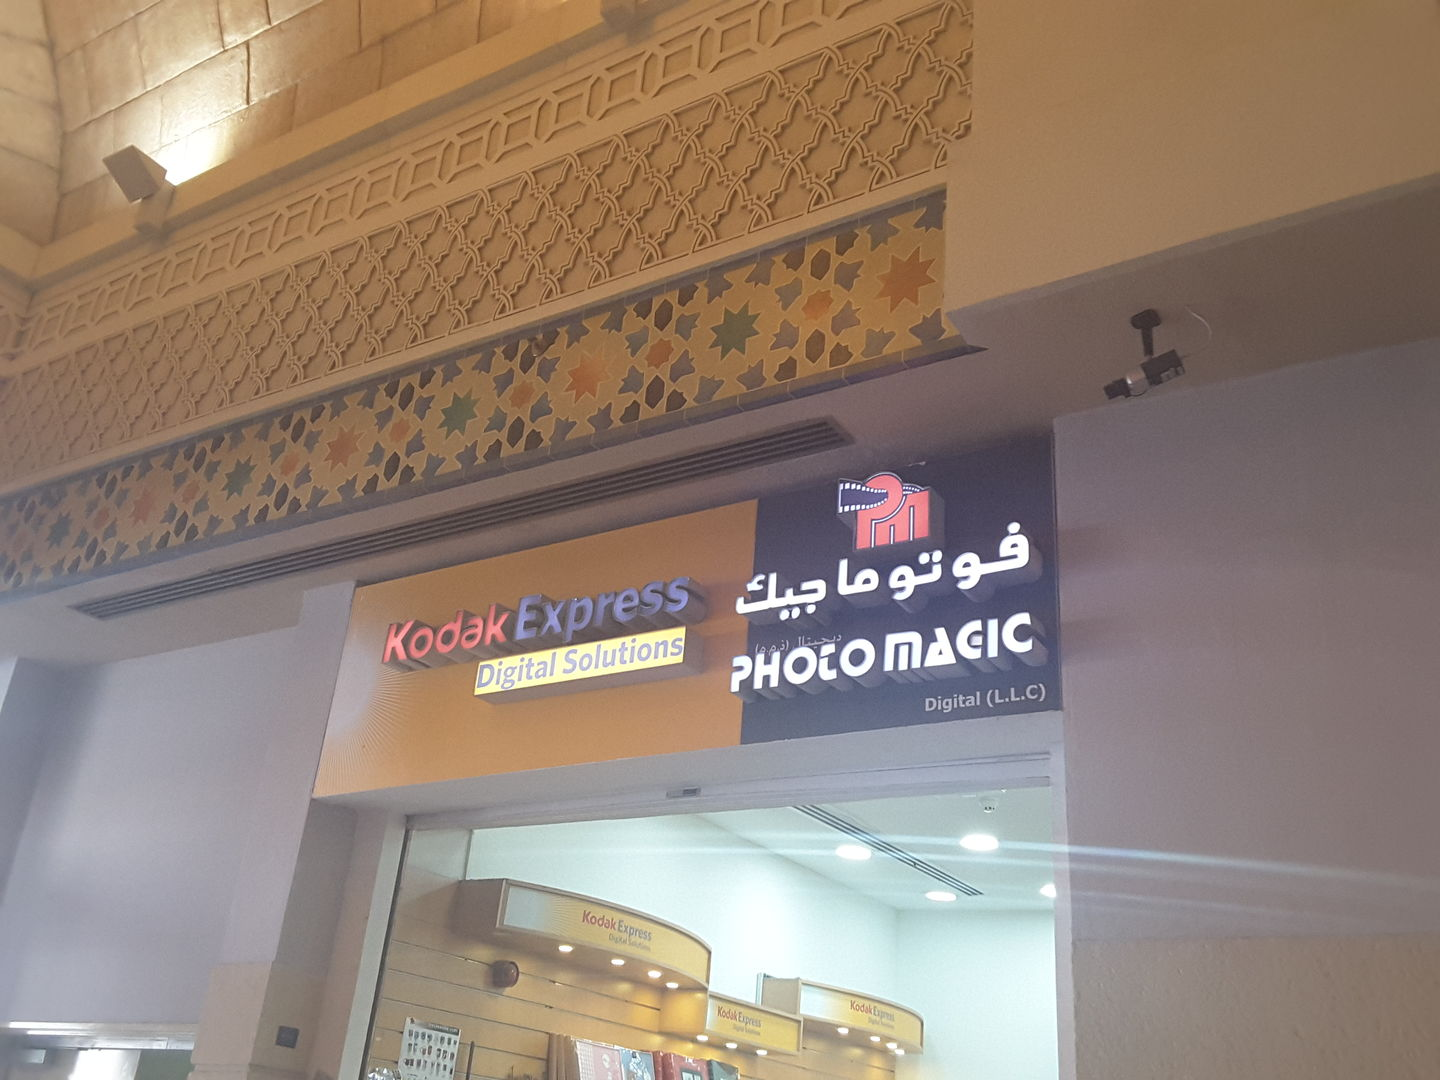 HiDubai-business-photo-magic-digital-kodak-express-vocational-services-art-photography-services-ibn-batuta-jebel-ali-1-dubai-2